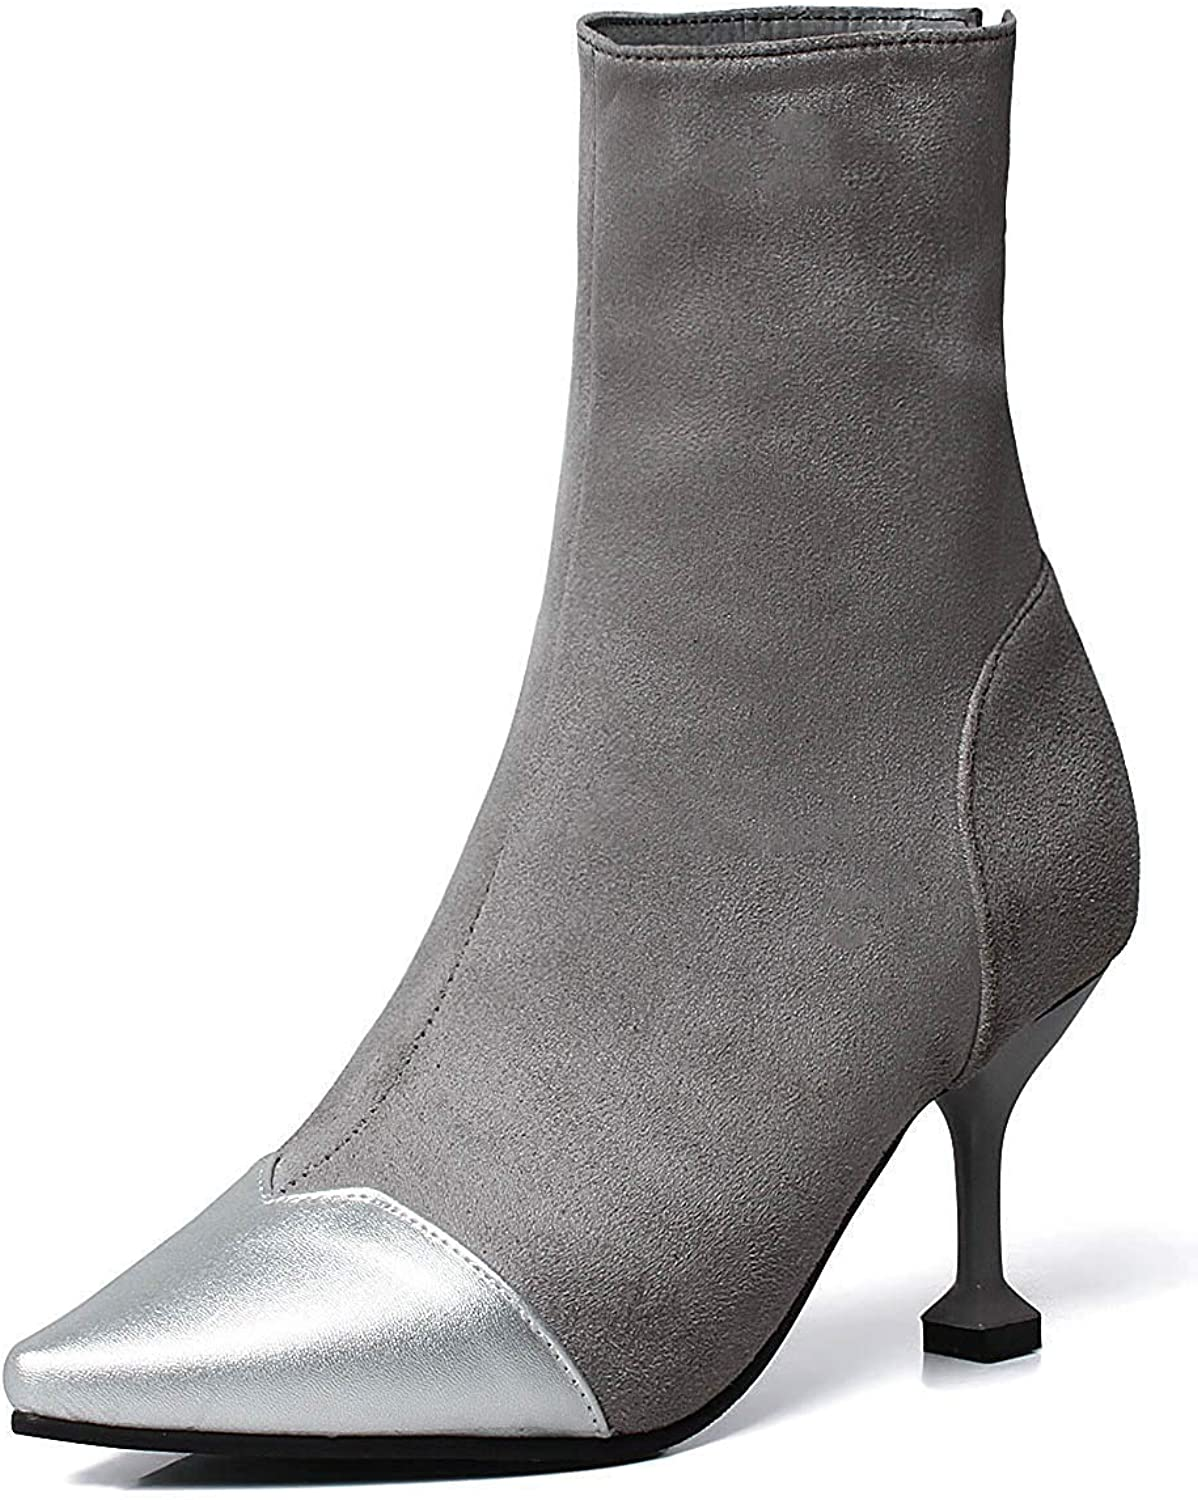 Unm Women's Sexy Stiletto High Heel Zip Up Pointed Toe Dress Ankle Booties with Zipper